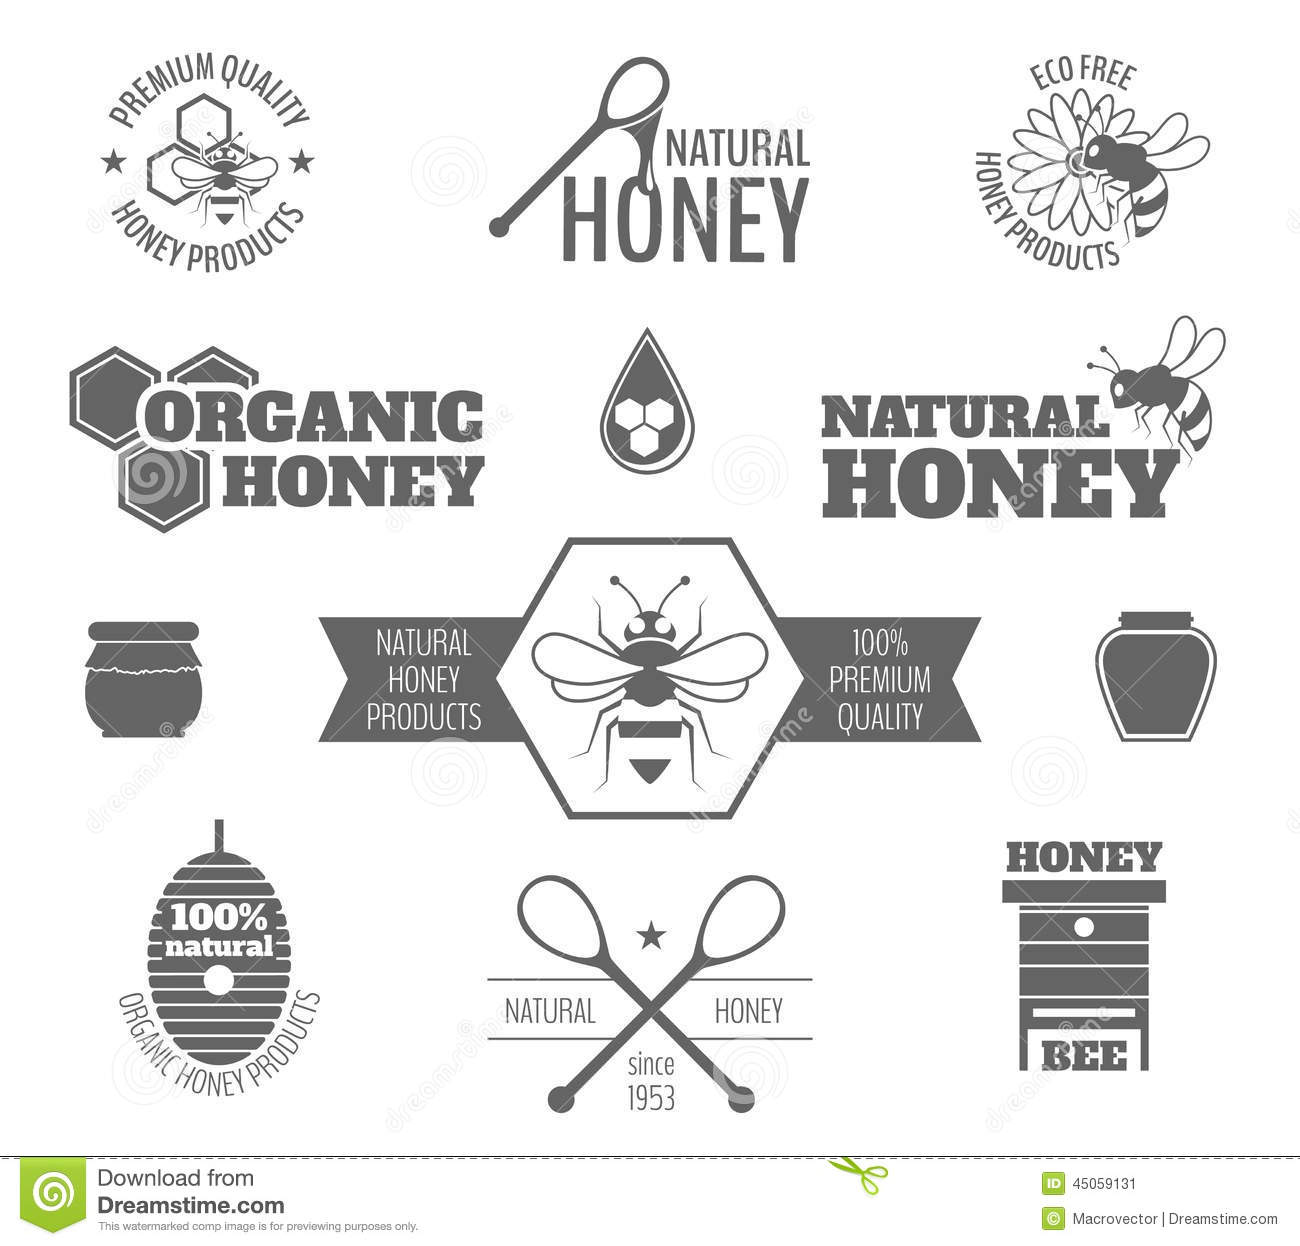 how to tell quality honey